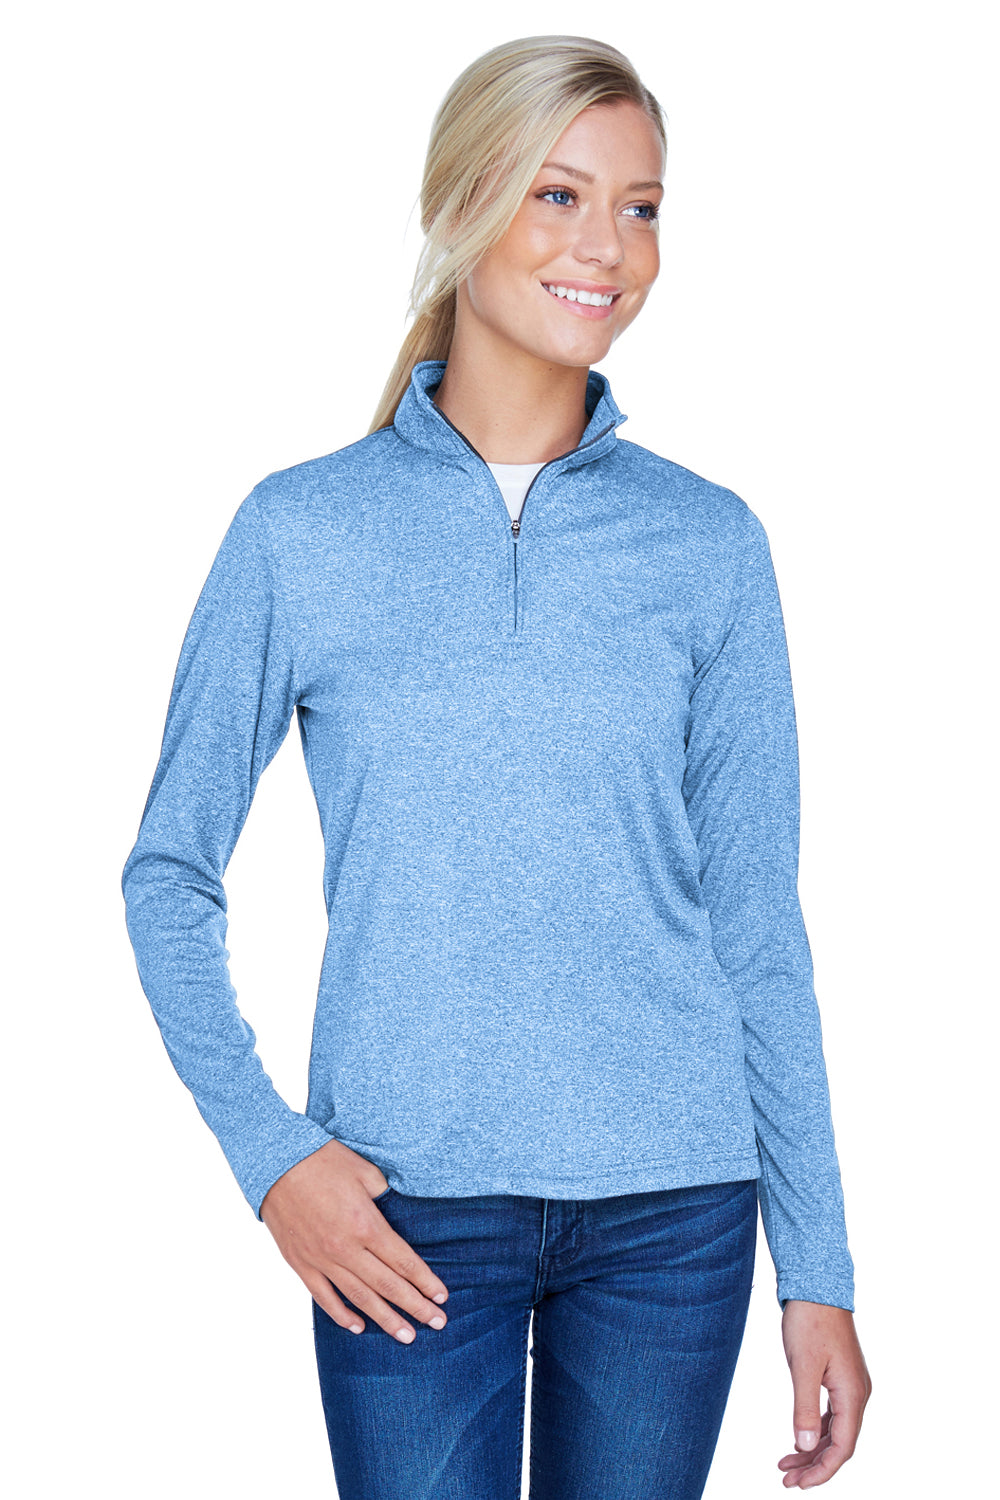 UltraClub 8618W Womens Heather Cool & Dry Performance Moisture Wicking 1/4 Zip Sweatshirt Columbia Blue Front